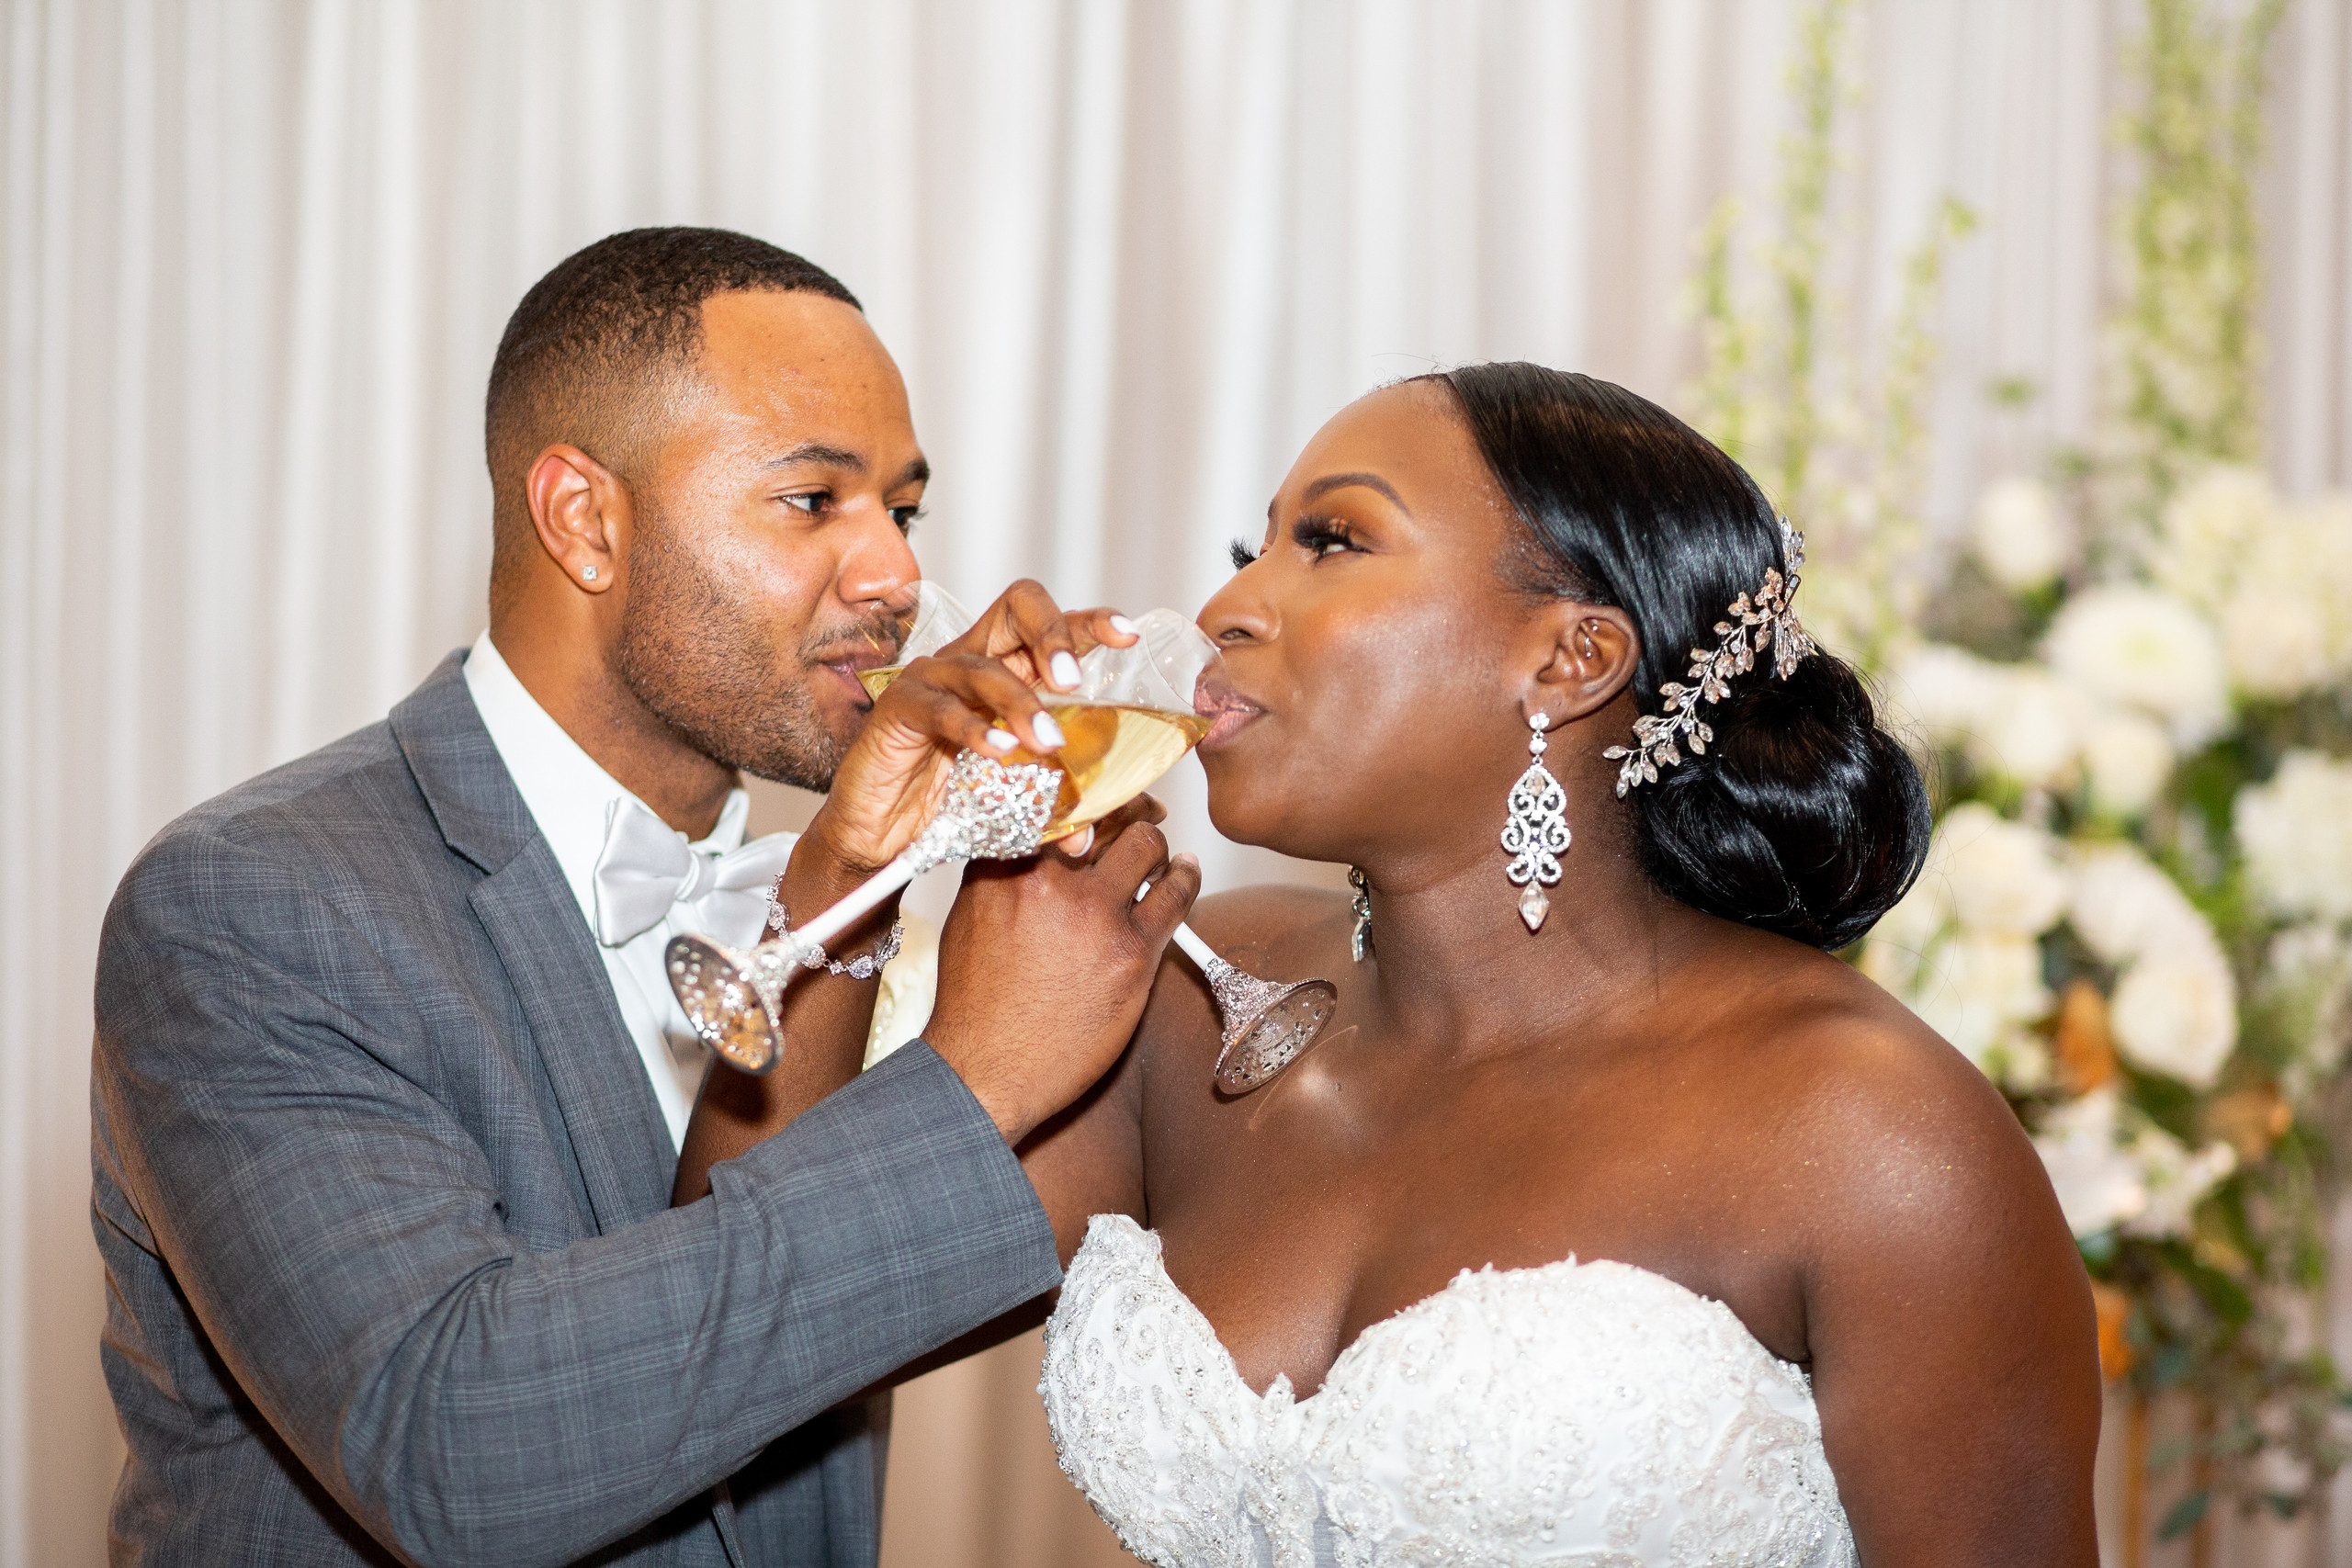 The bride and groom share a sip of champaigne during the wedding reception at the Hilton Main in Norfolk, Virginia.